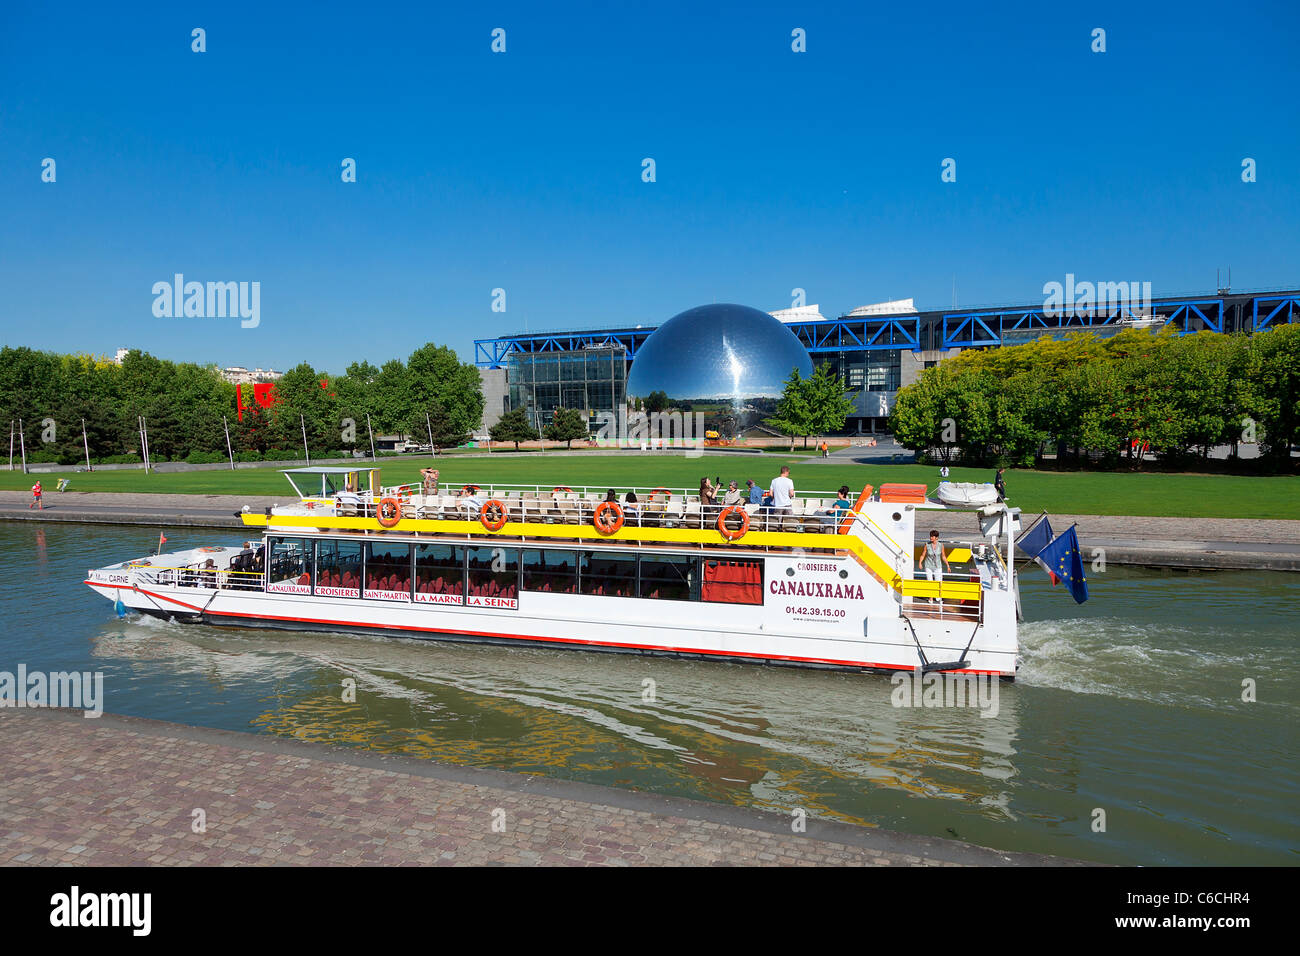 France, Paris, Geode at the city of Sciences and Industry in La Villette Park - Stock Image